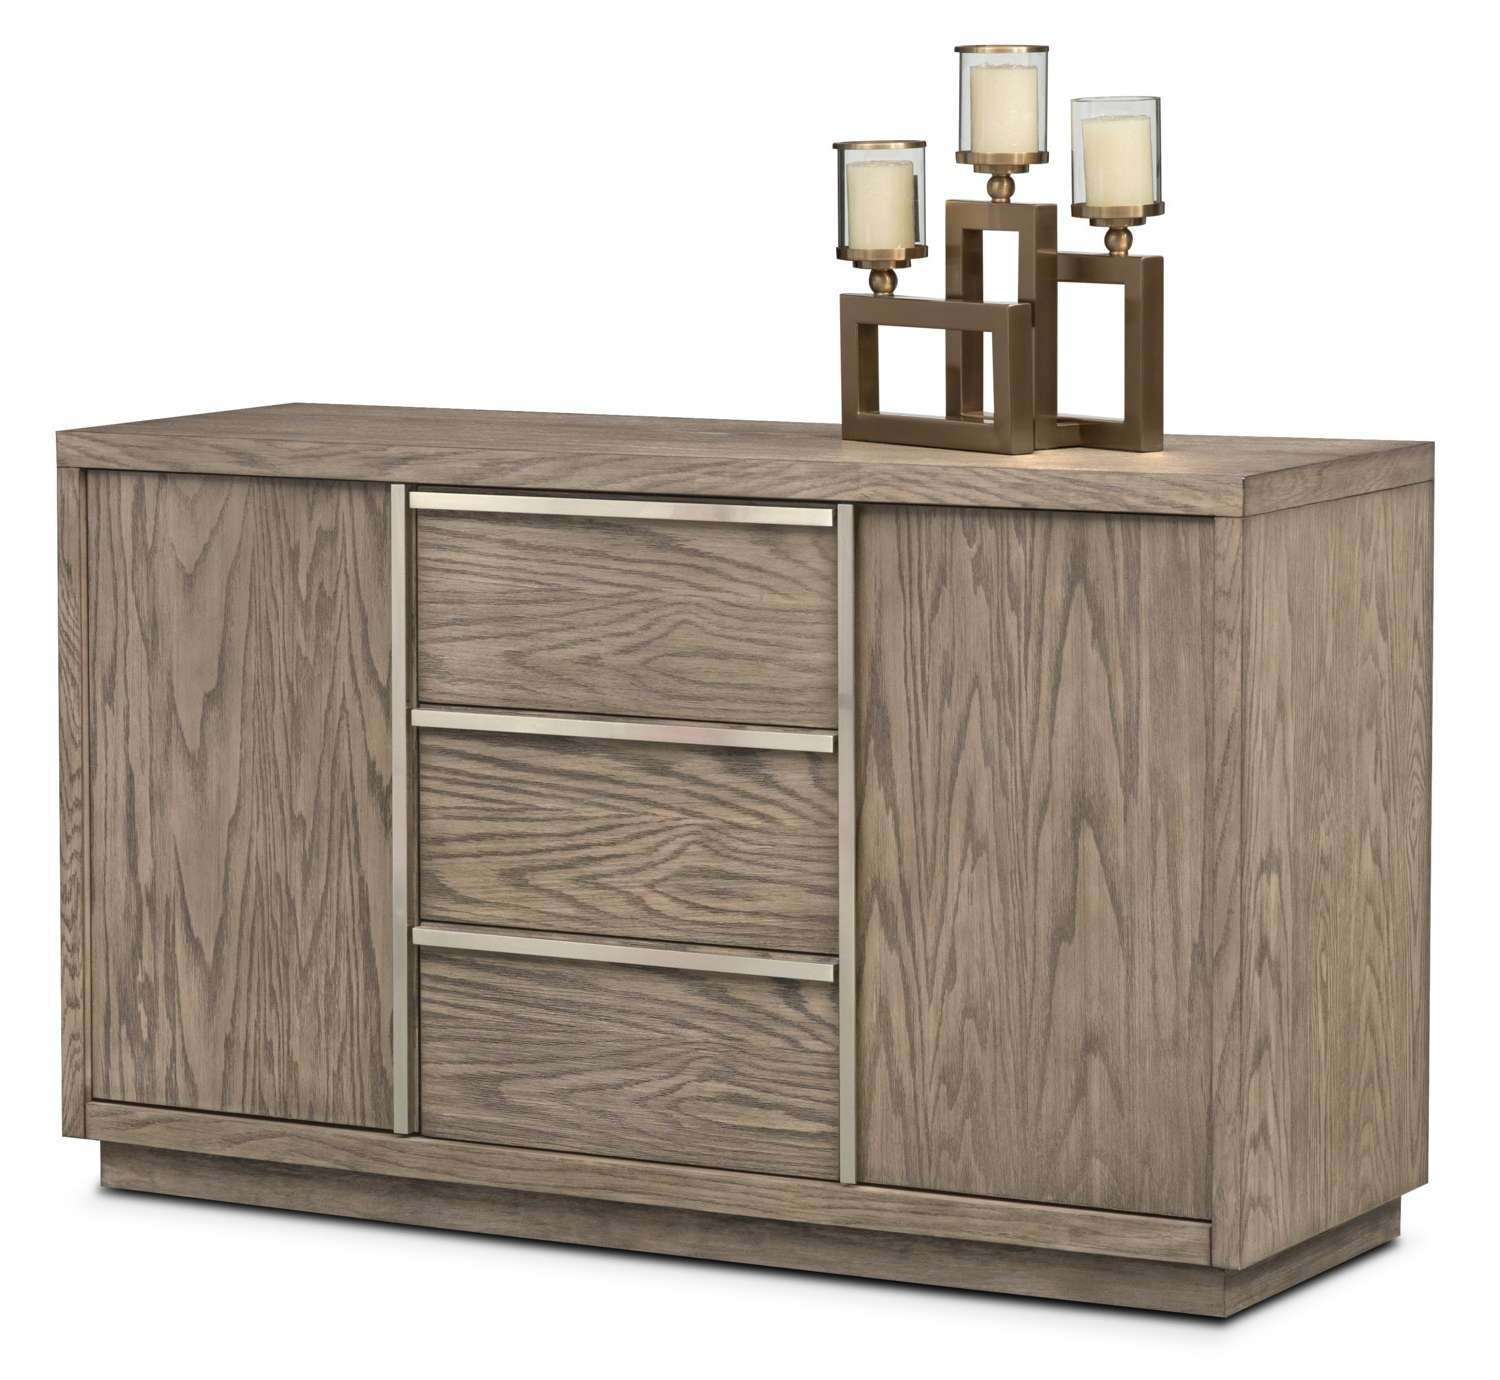 Buffet & Sideboard Cabinets | Value City Furniture And Mattresses Within Small Mirrored Sideboards (View 8 of 20)